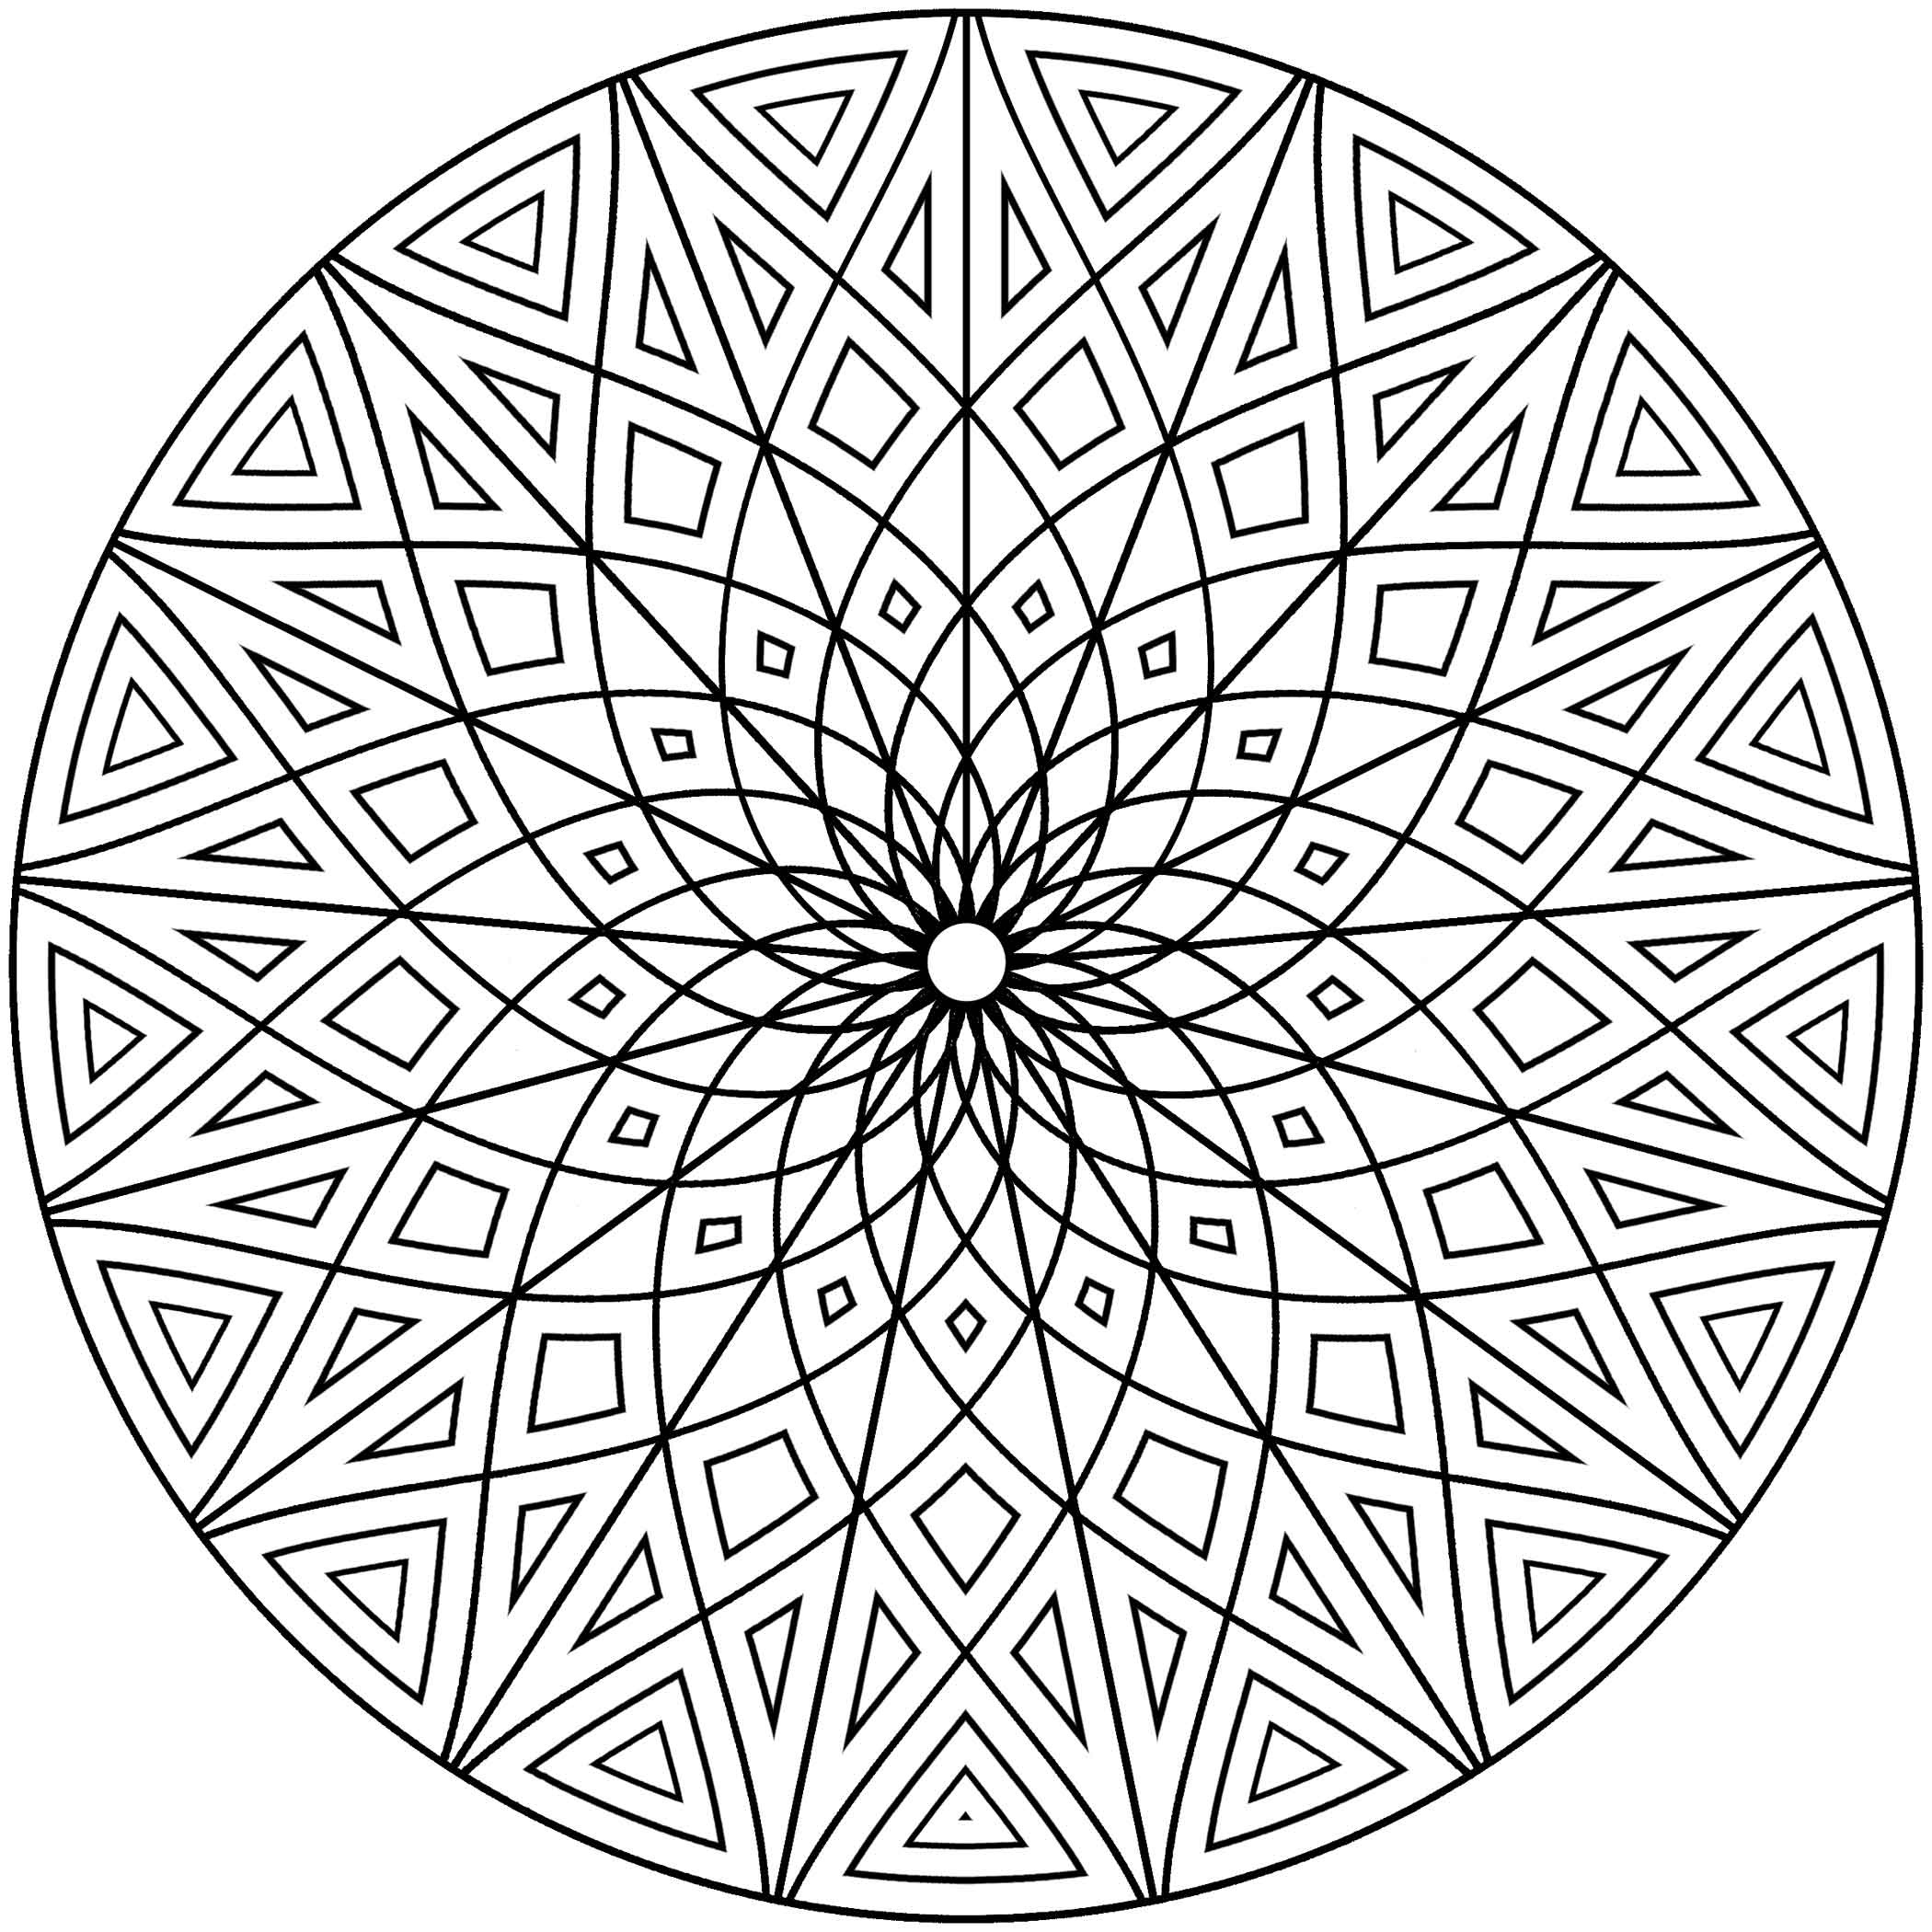 Hard Geometric Designs Coloring Page